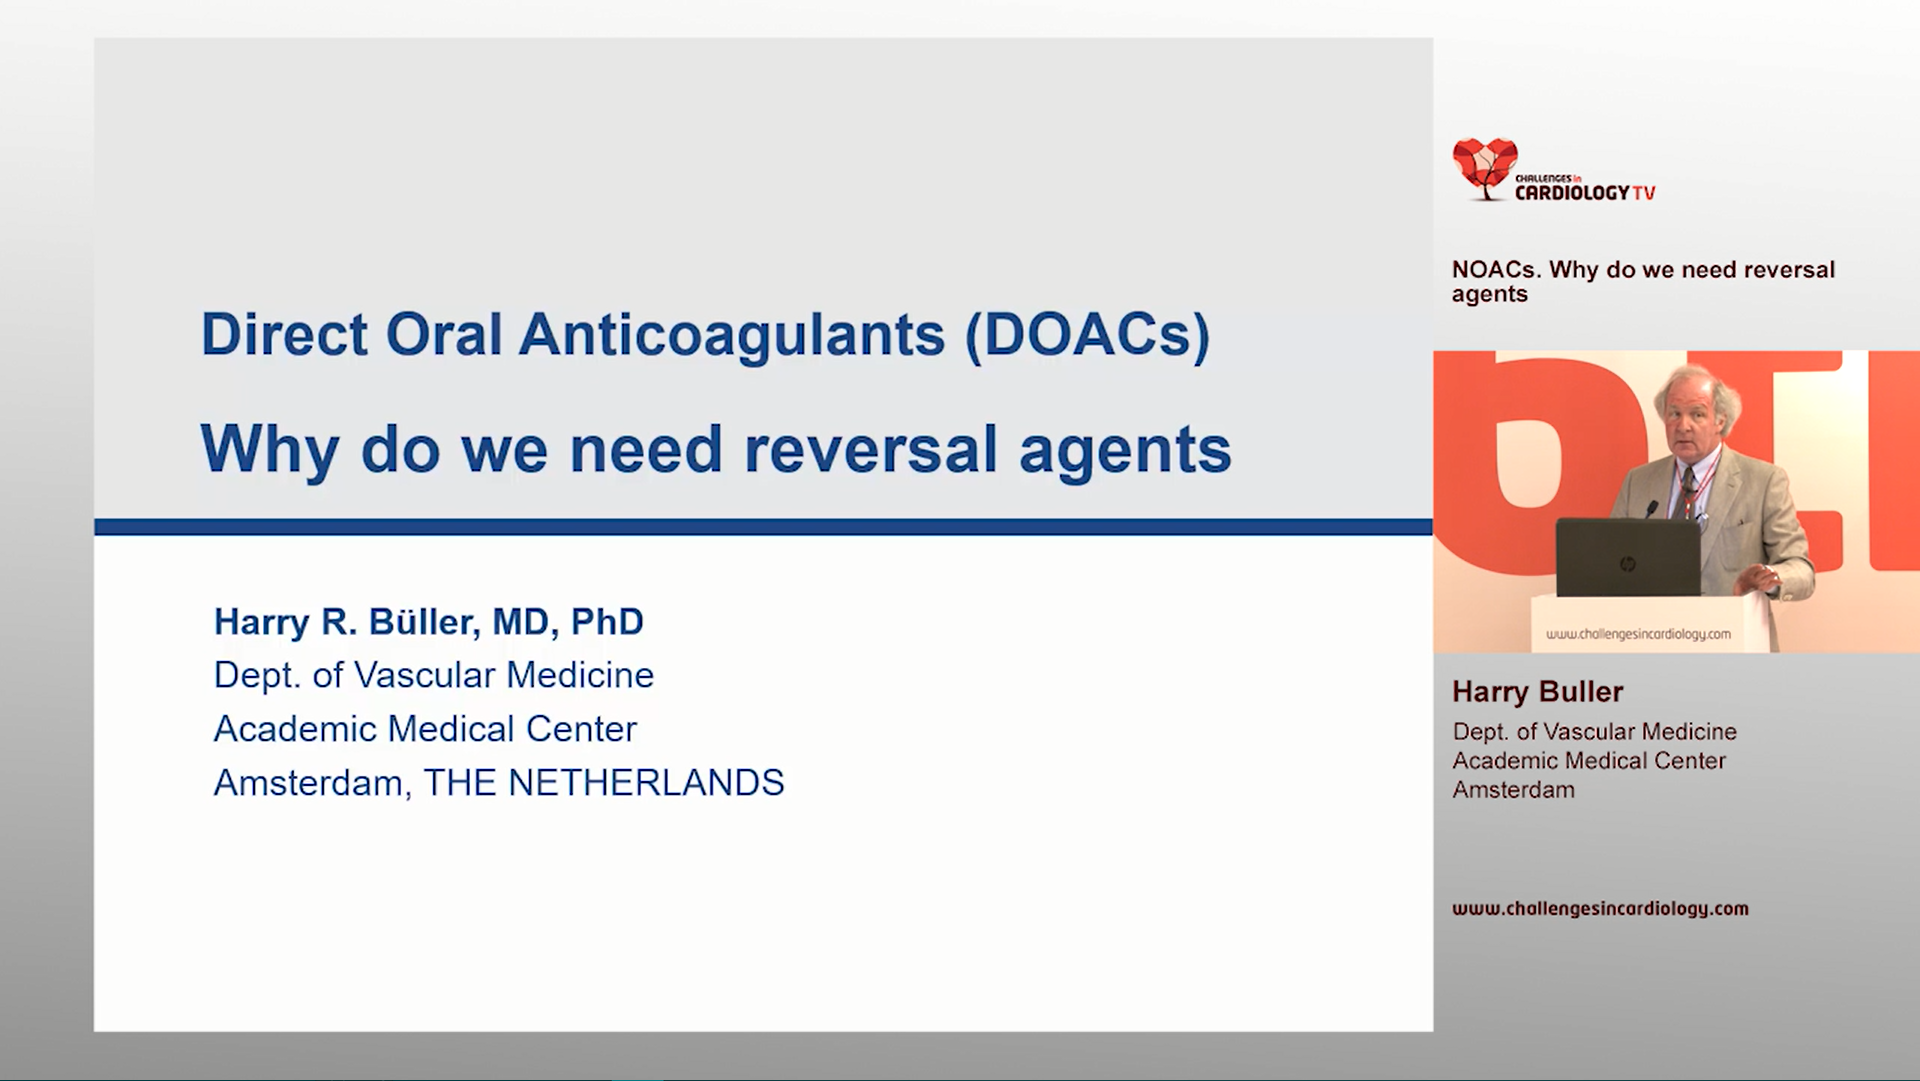 NOACs. Why do we need reversal agents - Harry Buller